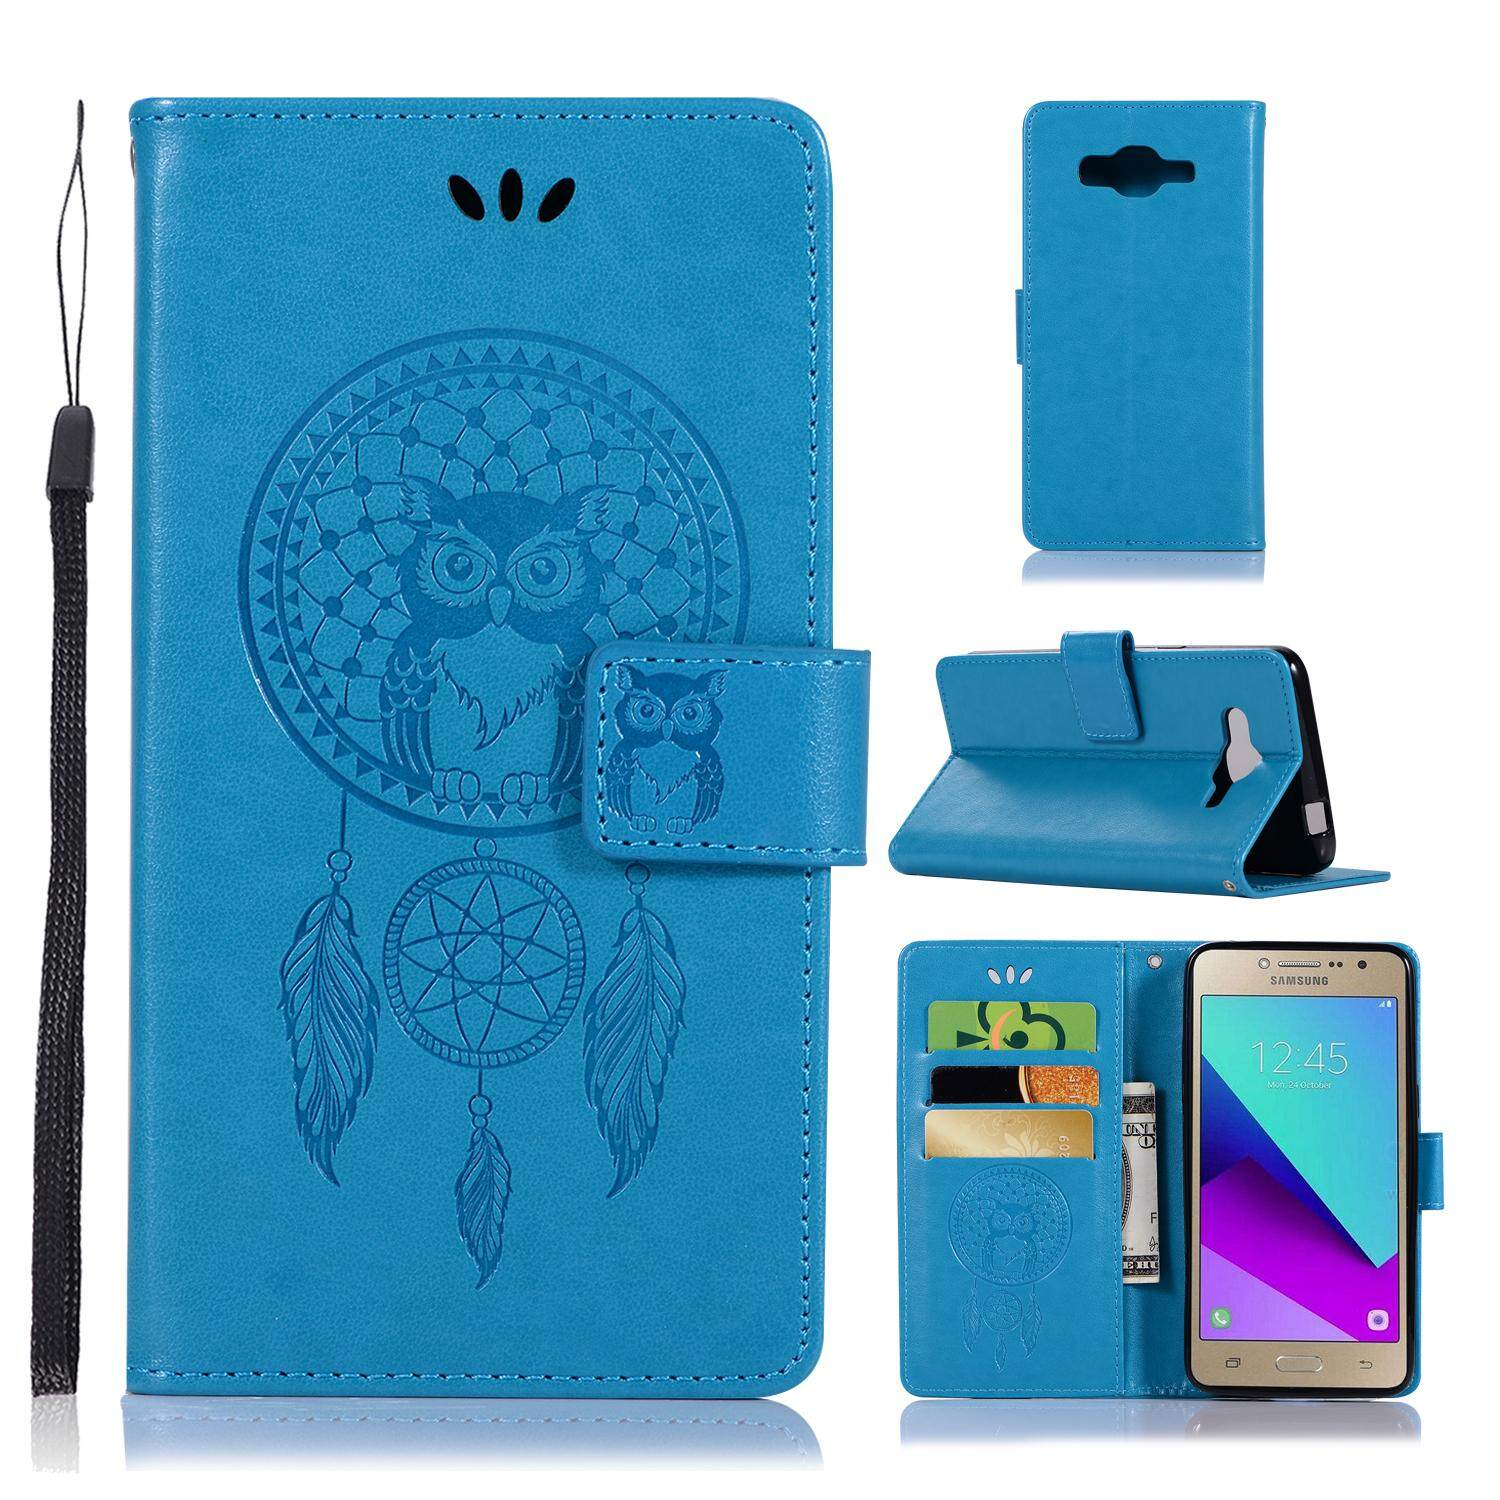 Luxury For Samsung Galaxy J2 Prime/grand Prime Plus Casing , 3d Owl Embossing Leather Folio Flip Case Cover By Life Goes On.